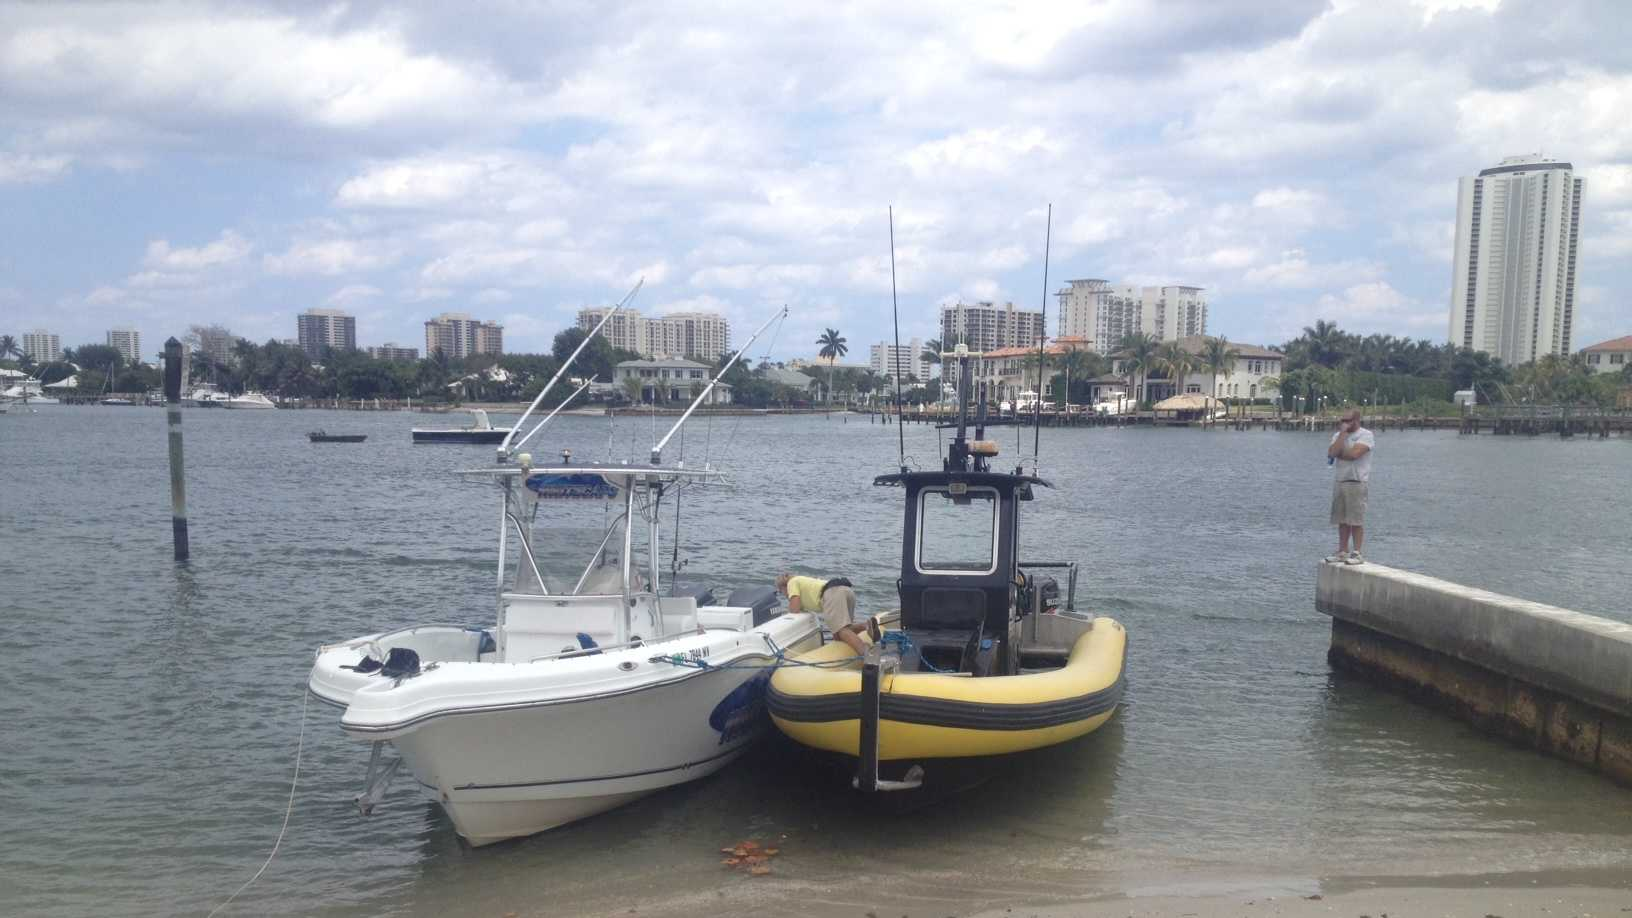 A birthday fishing party was cut short when the boat started taking on water and had to be towed back to shore Thursday.